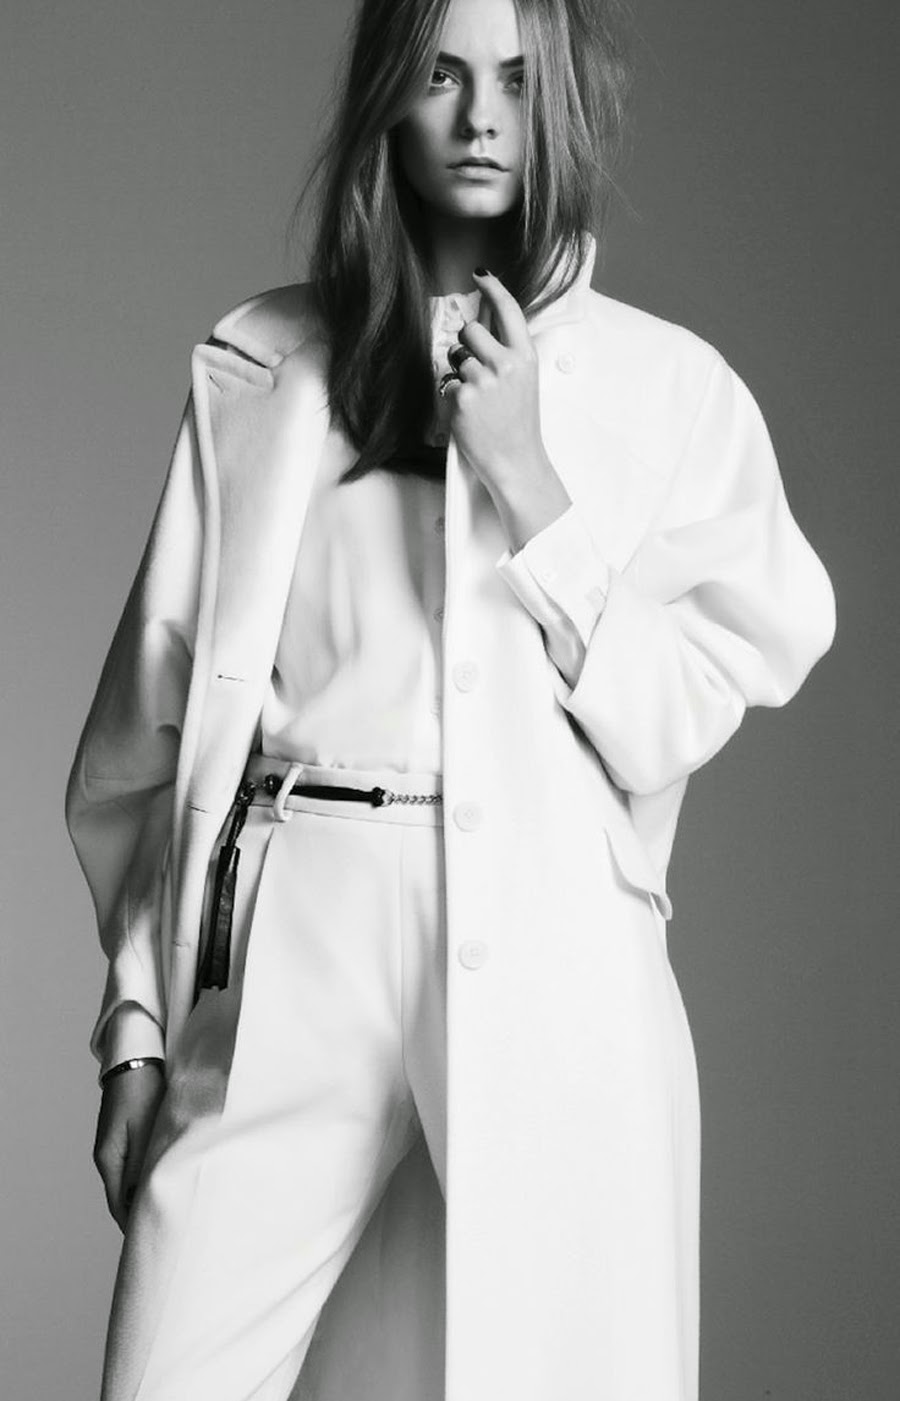 fashion blogger, street style, vogue editorials, oversized coat editorial, oversized coat outfit, total white